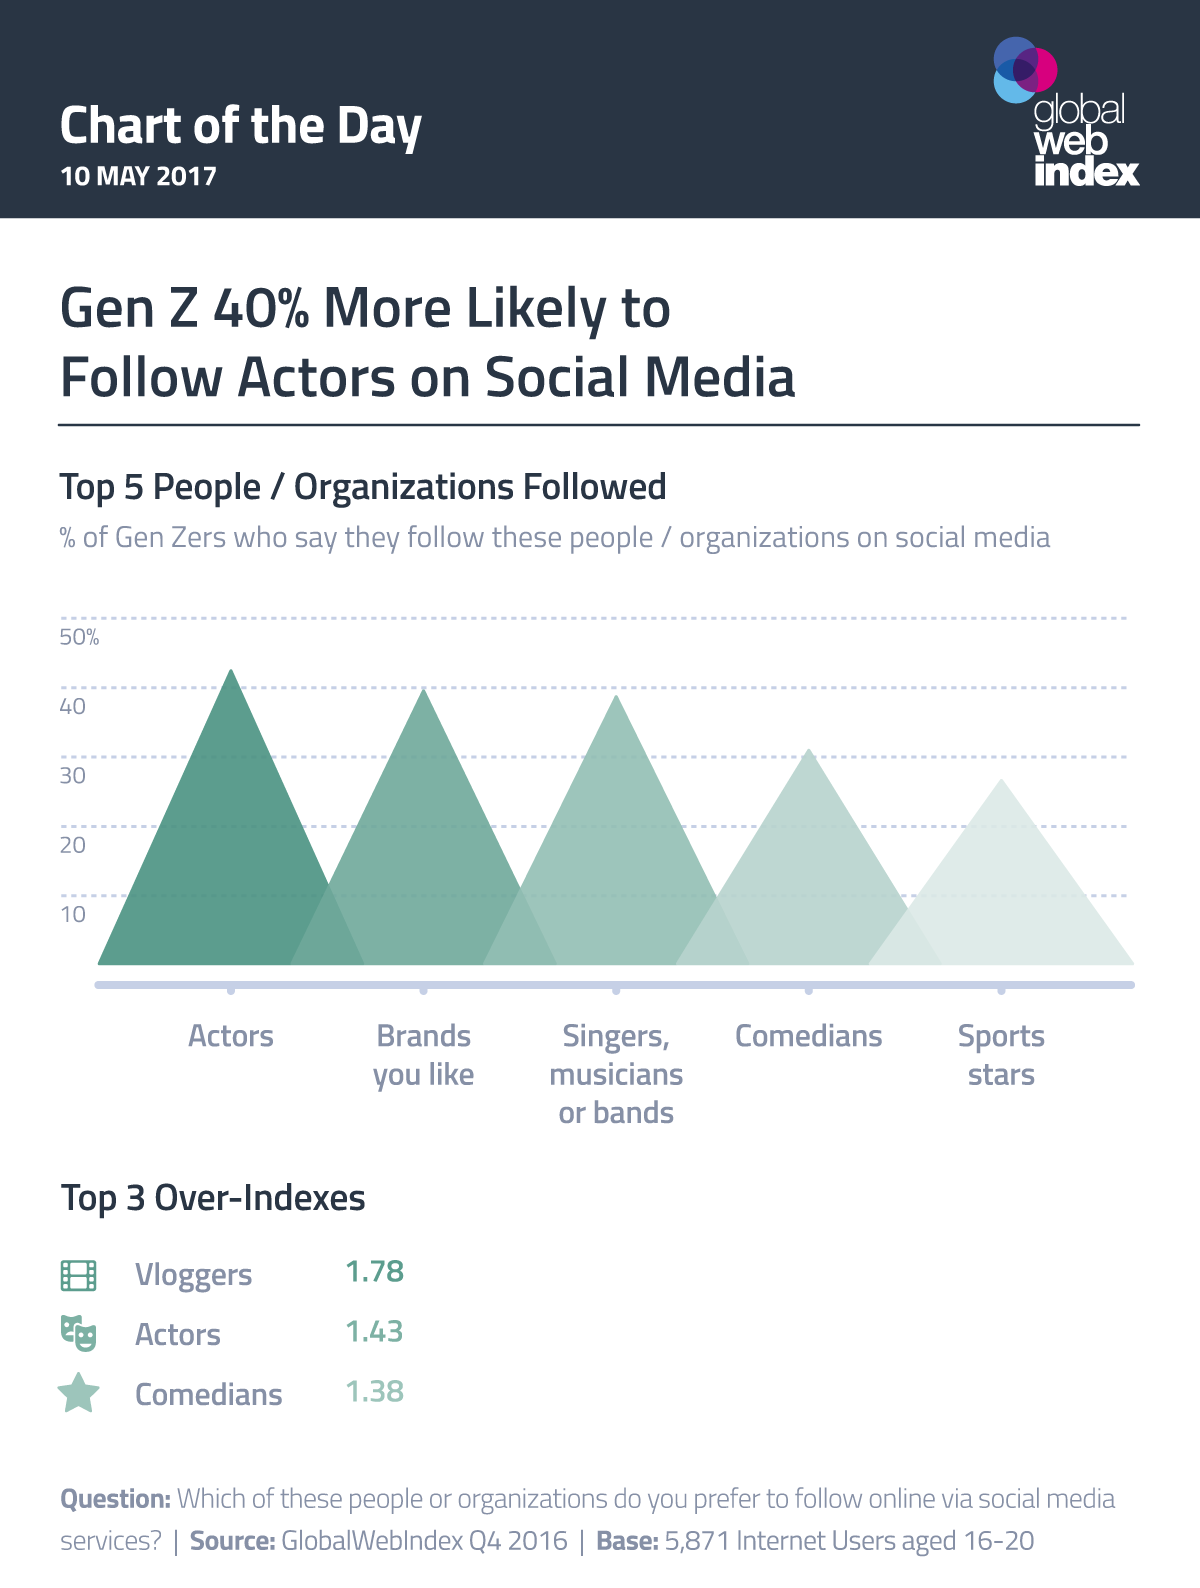 Gen Z 40% More Likely to Follow Actors on Social Media